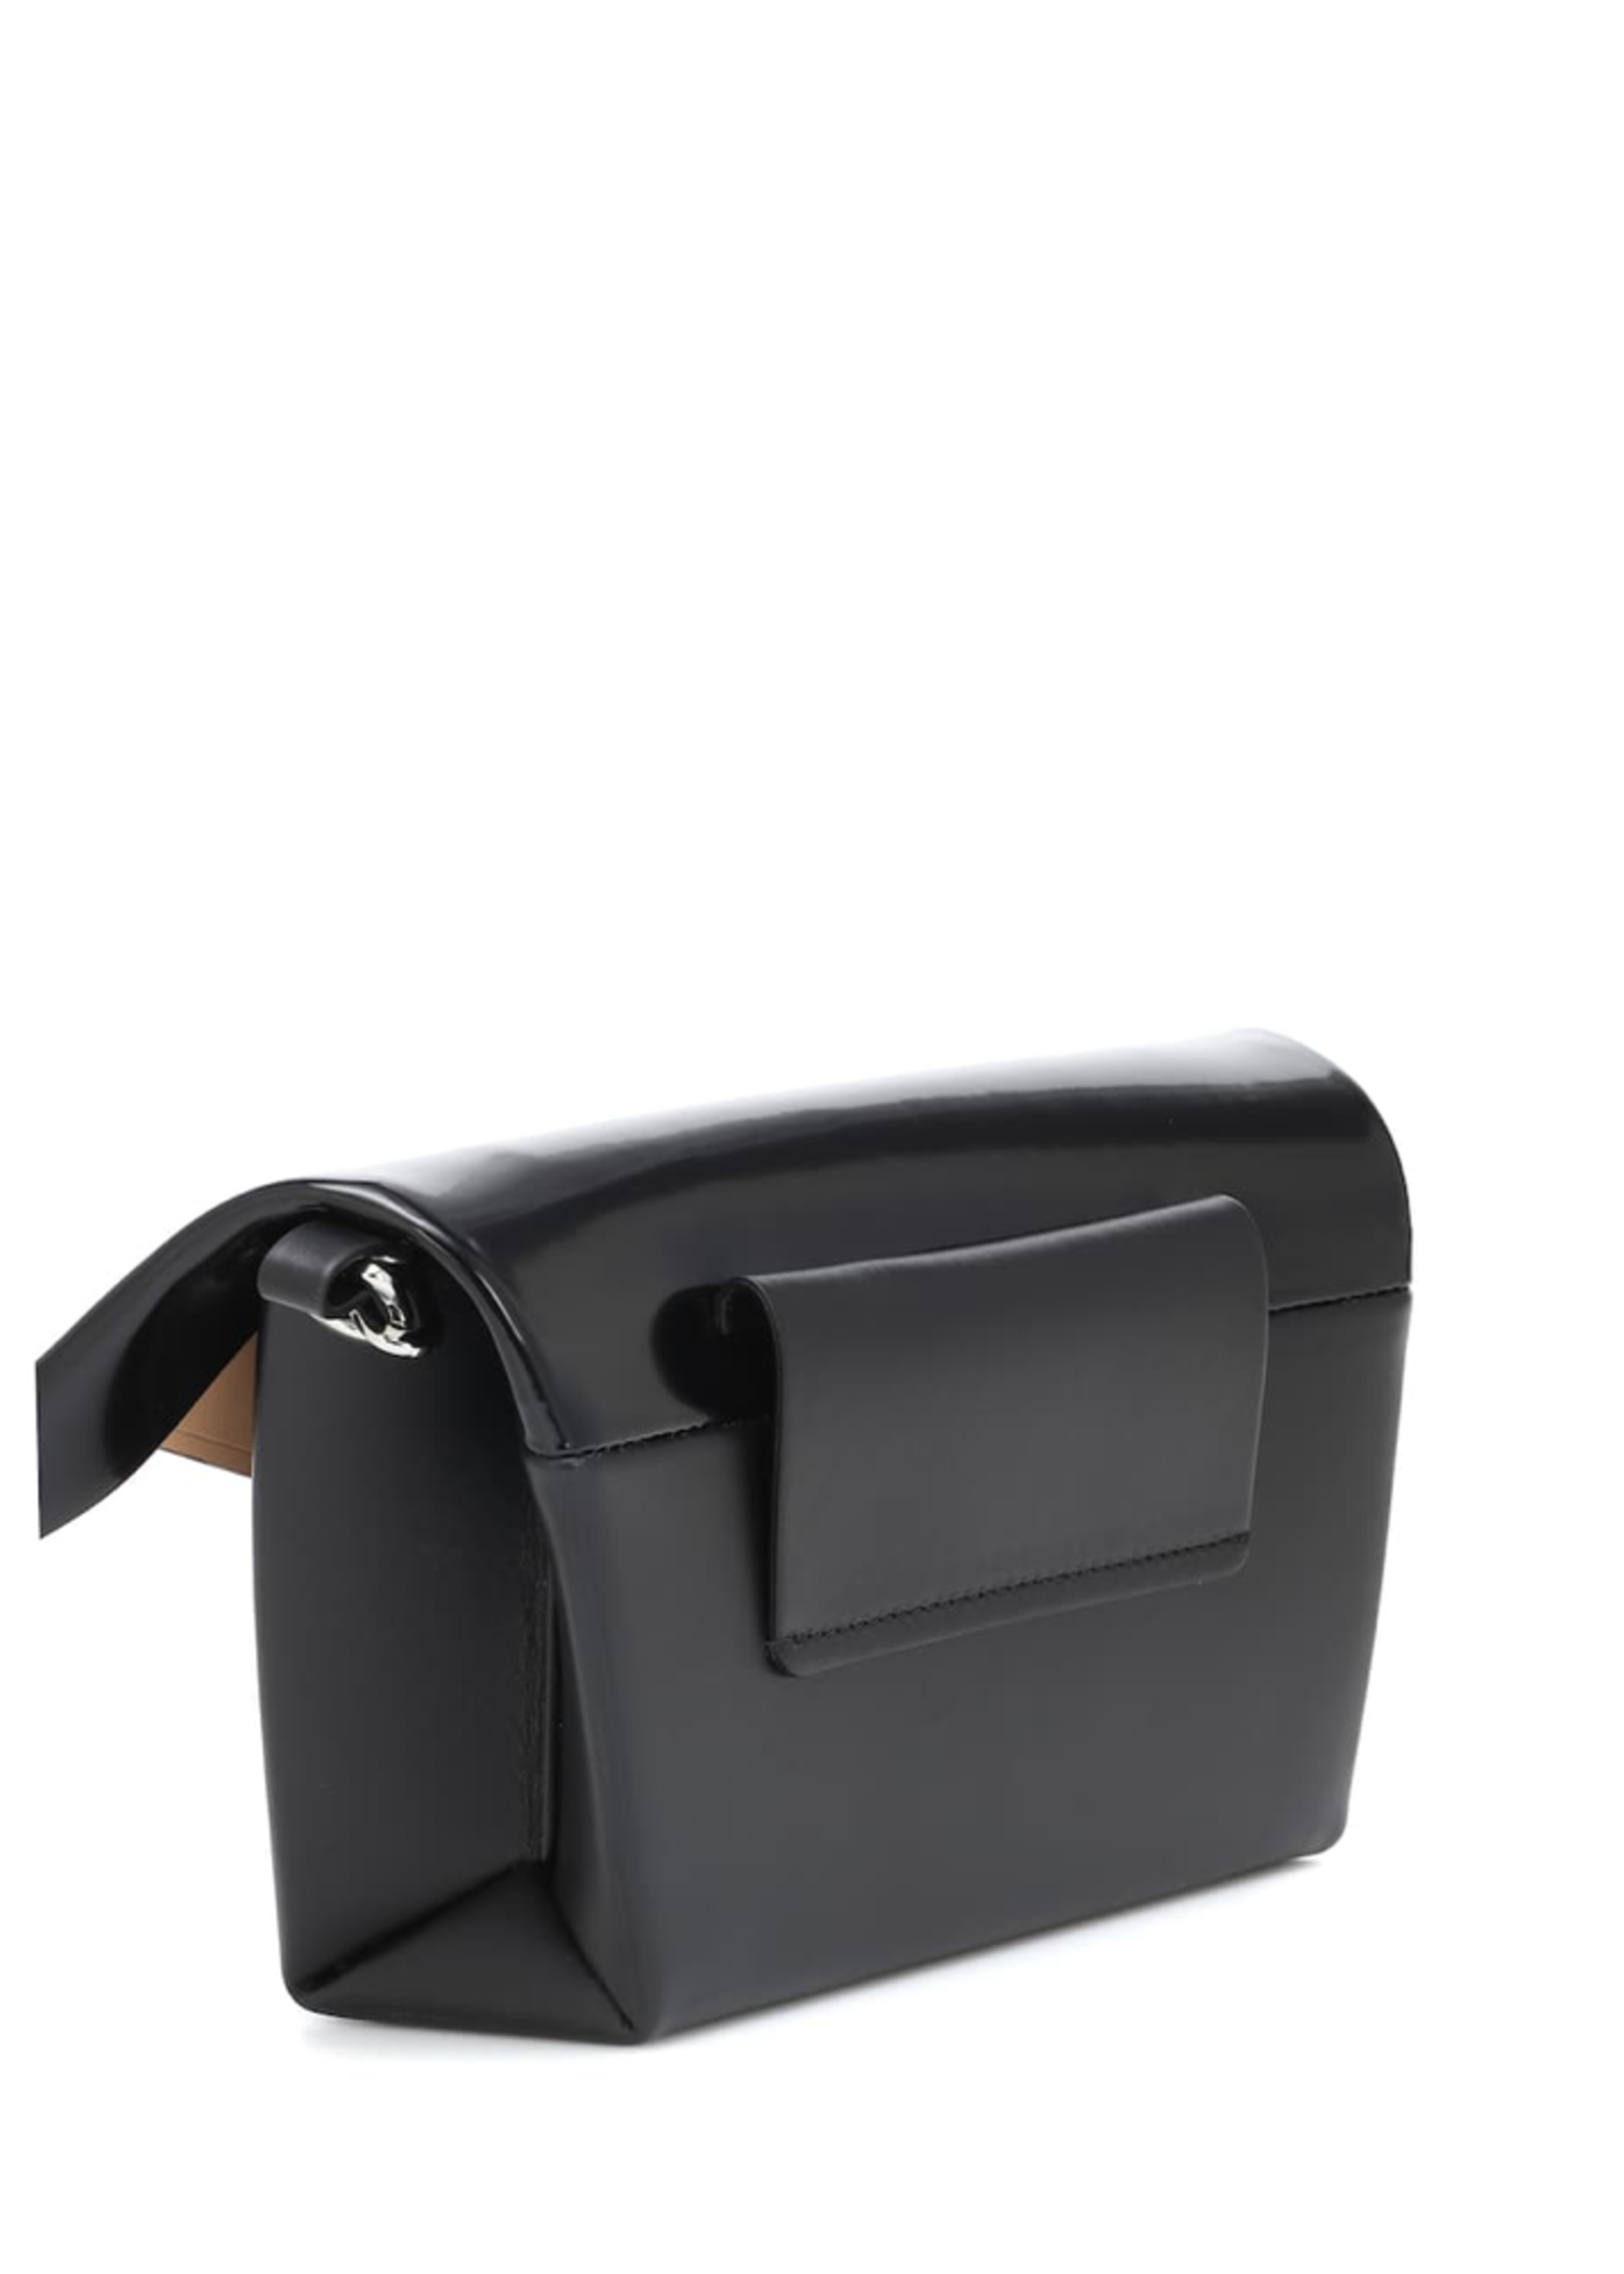 Maison Margiela Small Snatched Bag in Black